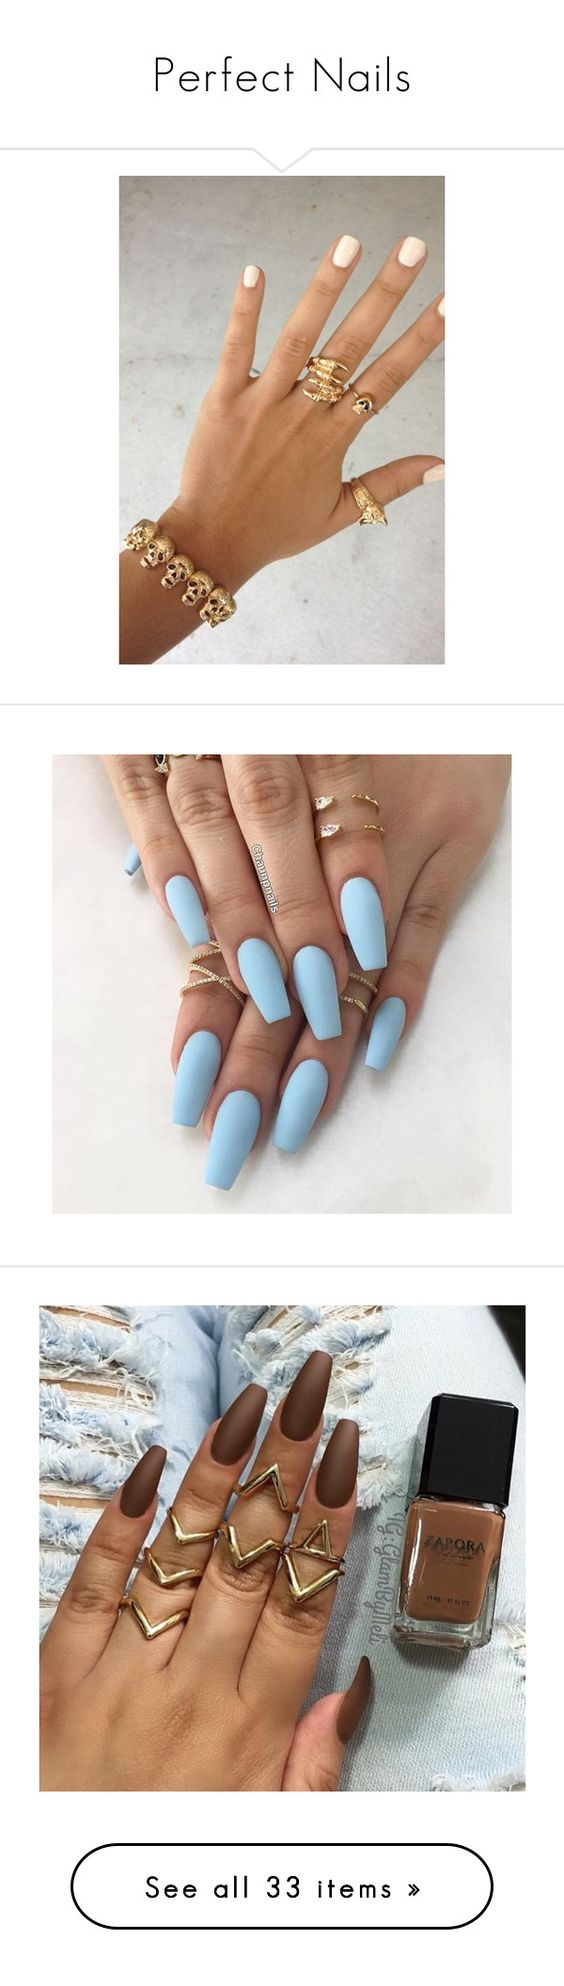 """""""Perfect Nails"""" by doggydoddyfroggymoppy ❤ liked on Polyvore featuring pictures, nails, photos, rings, sets., beauty products, nail care, nail treatments, beauty and makeup"""